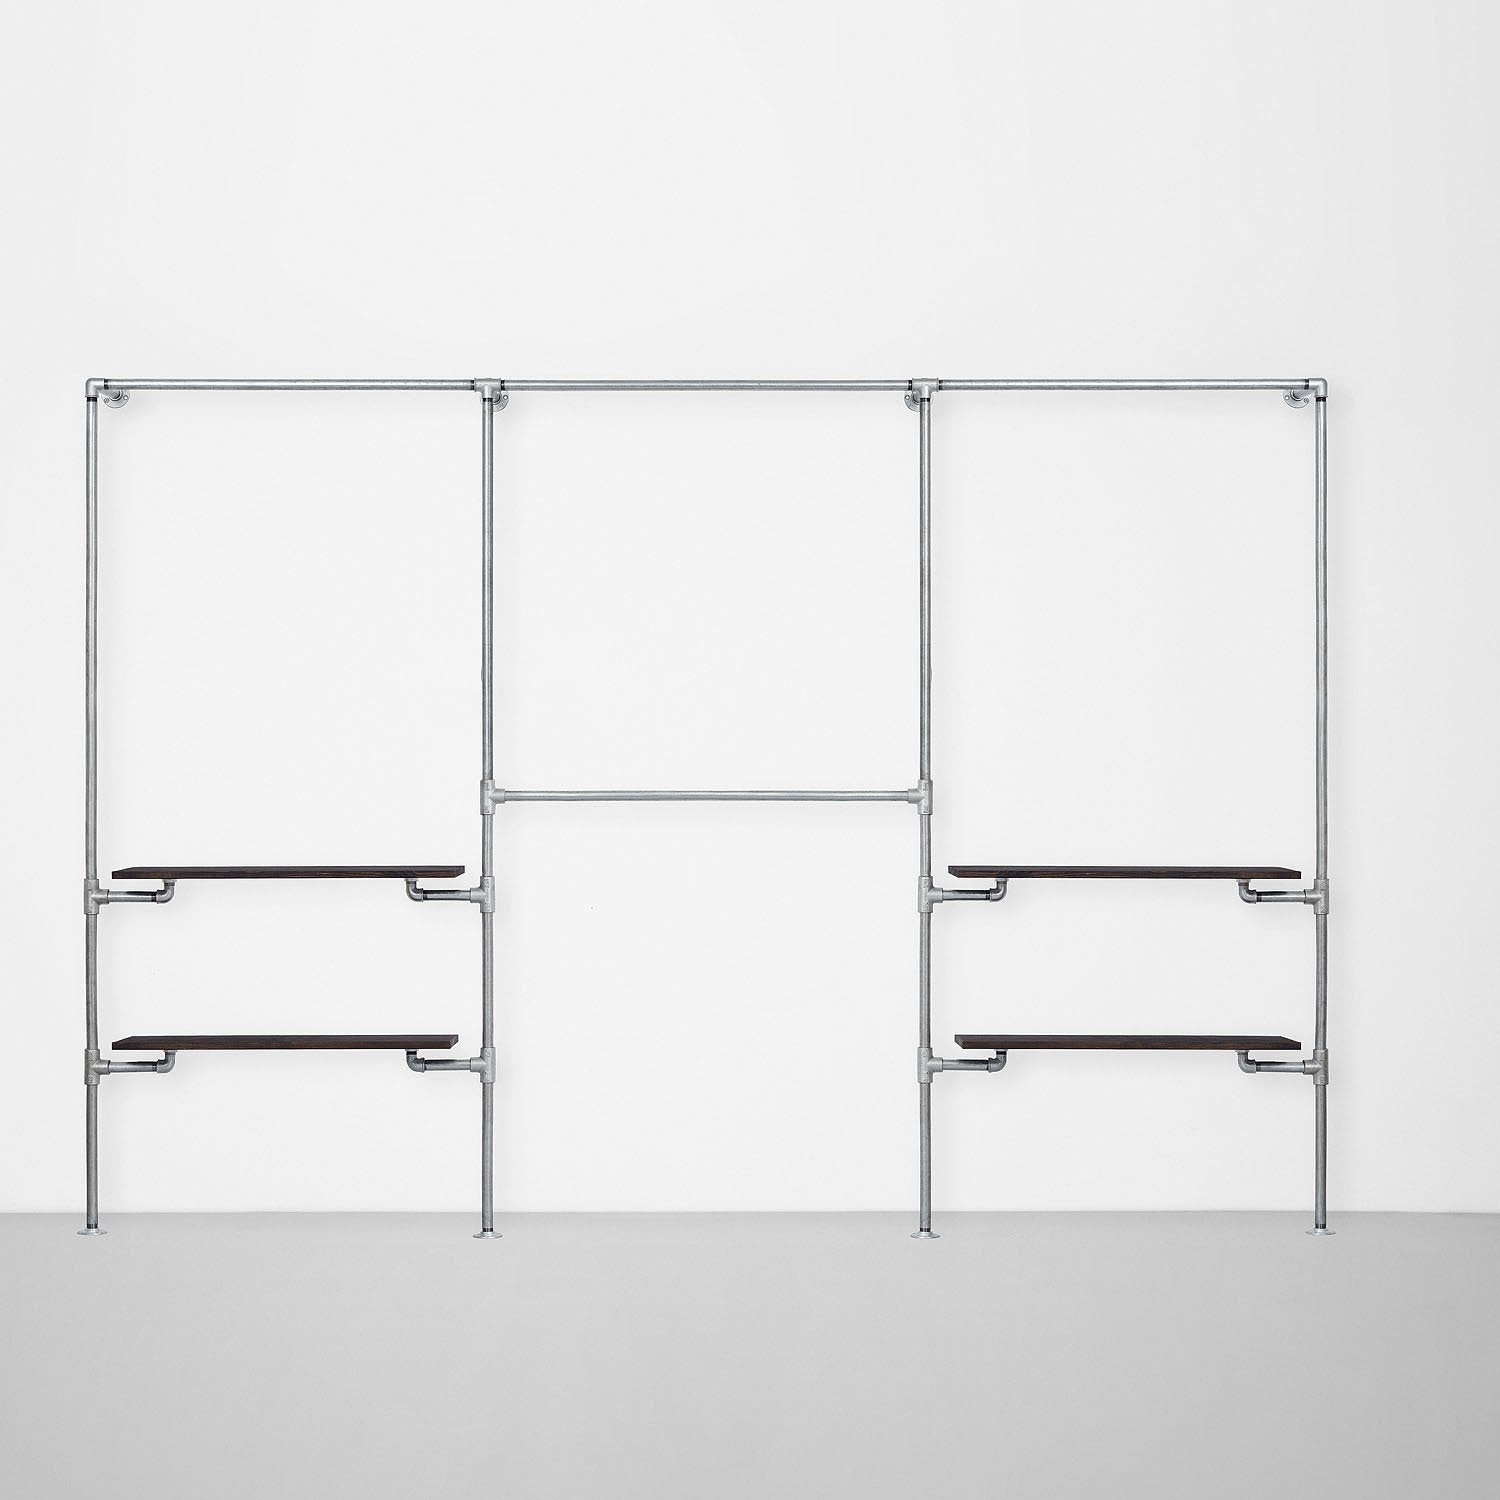 The Walk-In 3 row wardrobe system - (1 rail + 2 shelves / 2 rails/ 1 rail + 2 shelves)